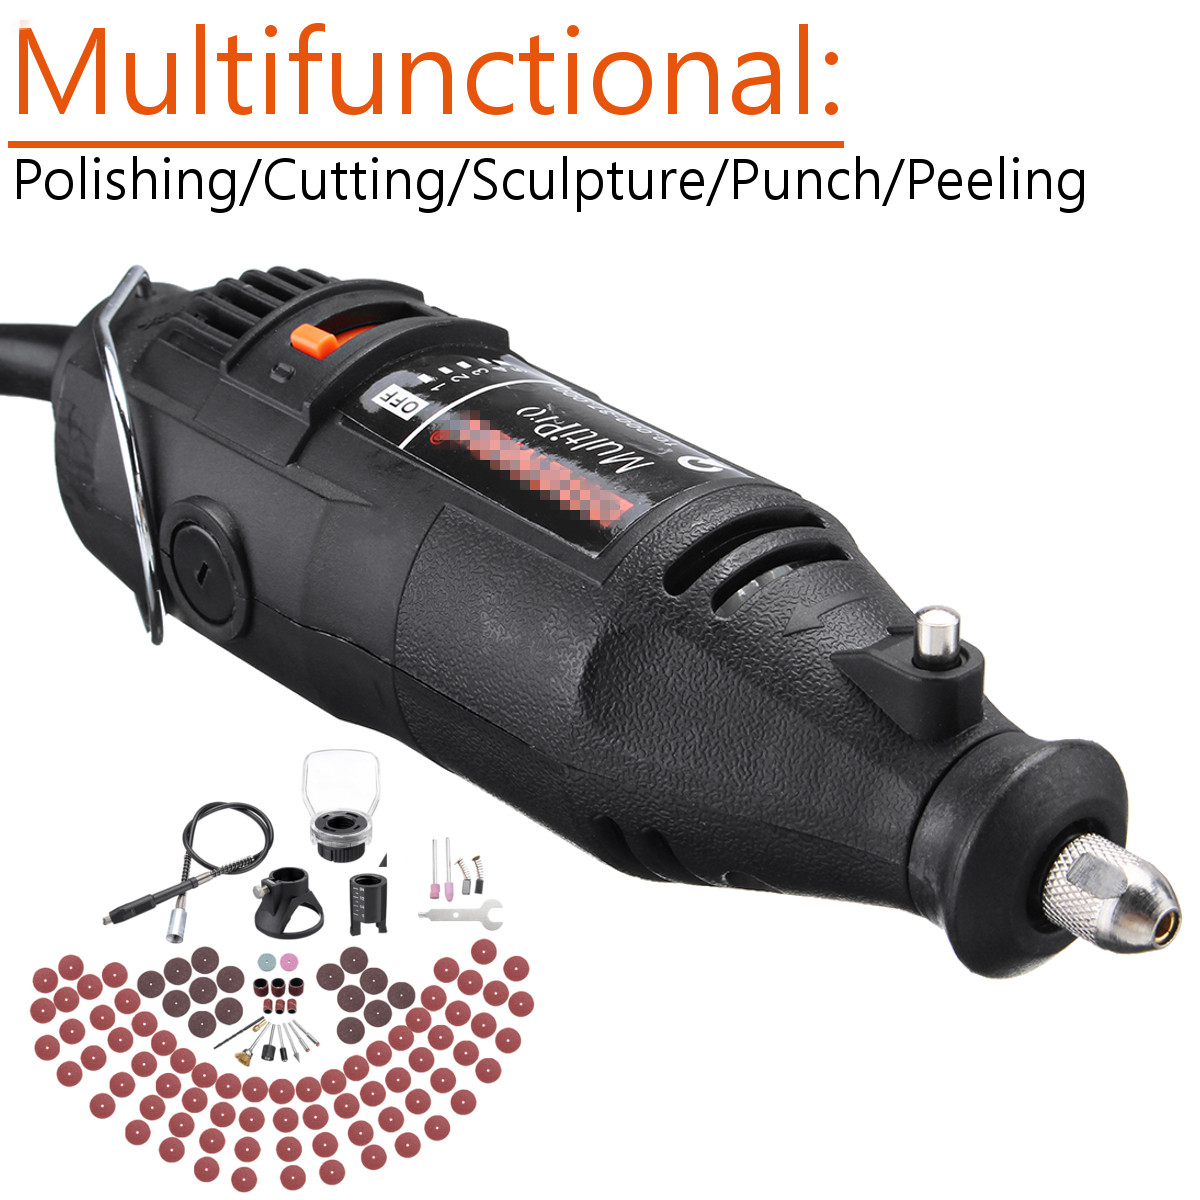 Multifunctional Electric Engraving Tools Kit Complete DIY Grinders Polishing Rotary Cutting Jade Carving Jewelry Design Tool SetMultifunctional Electric Engraving Tools Kit Complete DIY Grinders Polishing Rotary Cutting Jade Carving Jewelry Design Tool Set